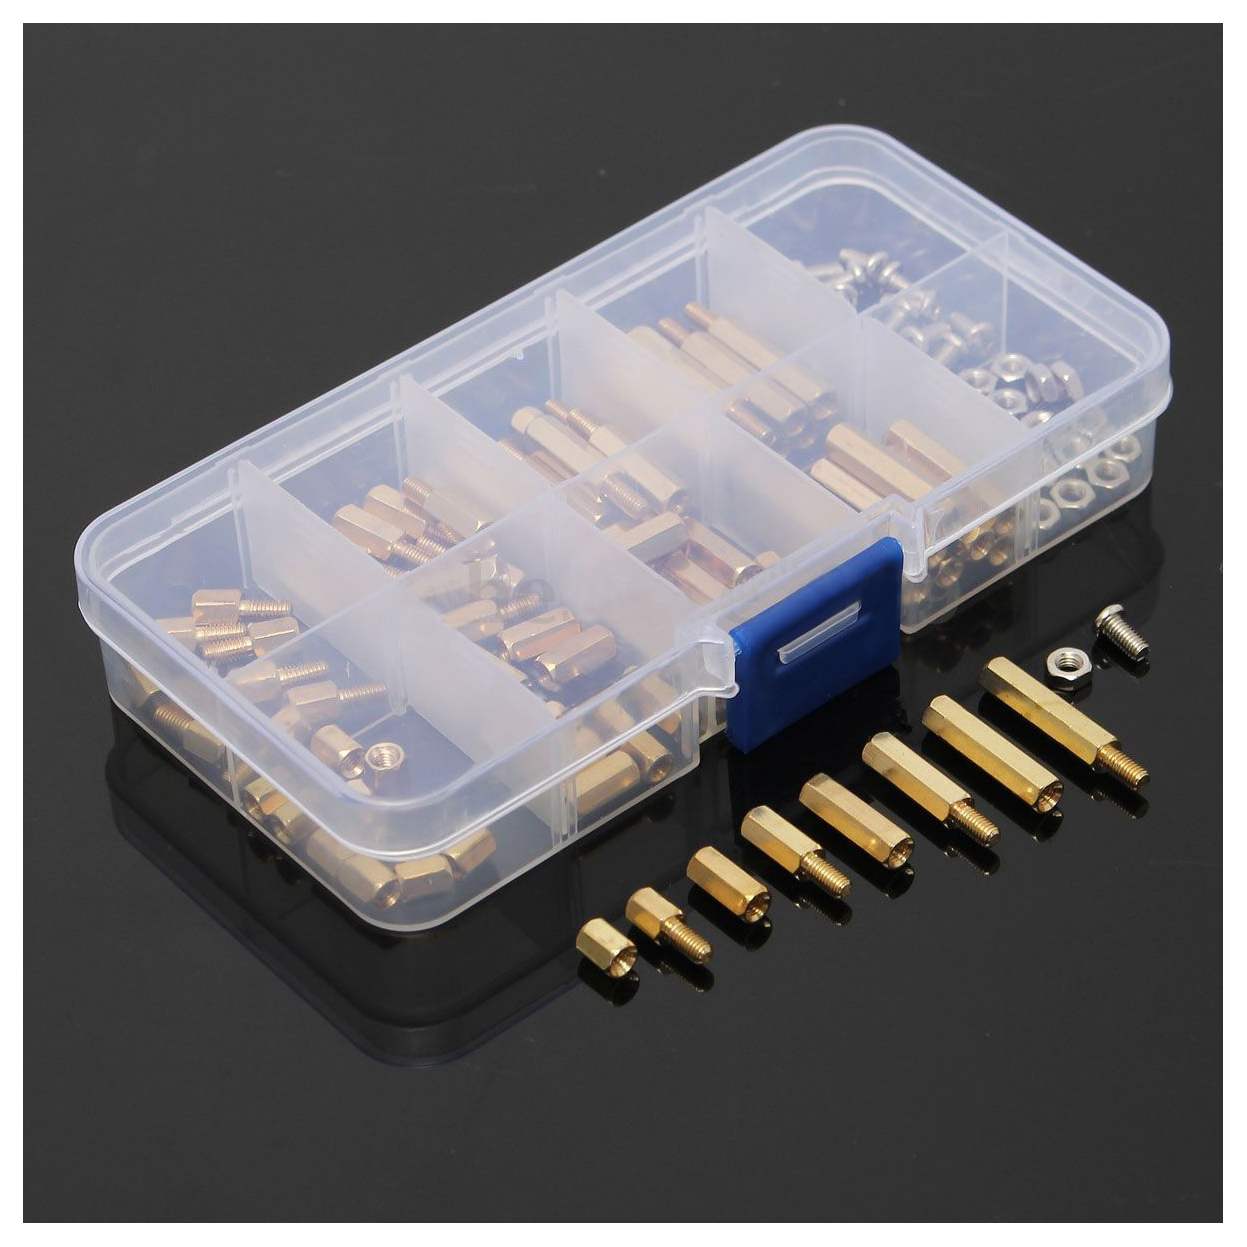 120Pcs M3 Male Female Brass Standoff Spacer PCB Board Hex Screws Nut Assortment m2 3 3 1pcs brass standoff 3mm spacer standard male female brass standoffs metric thread column high quality 1 piece sale